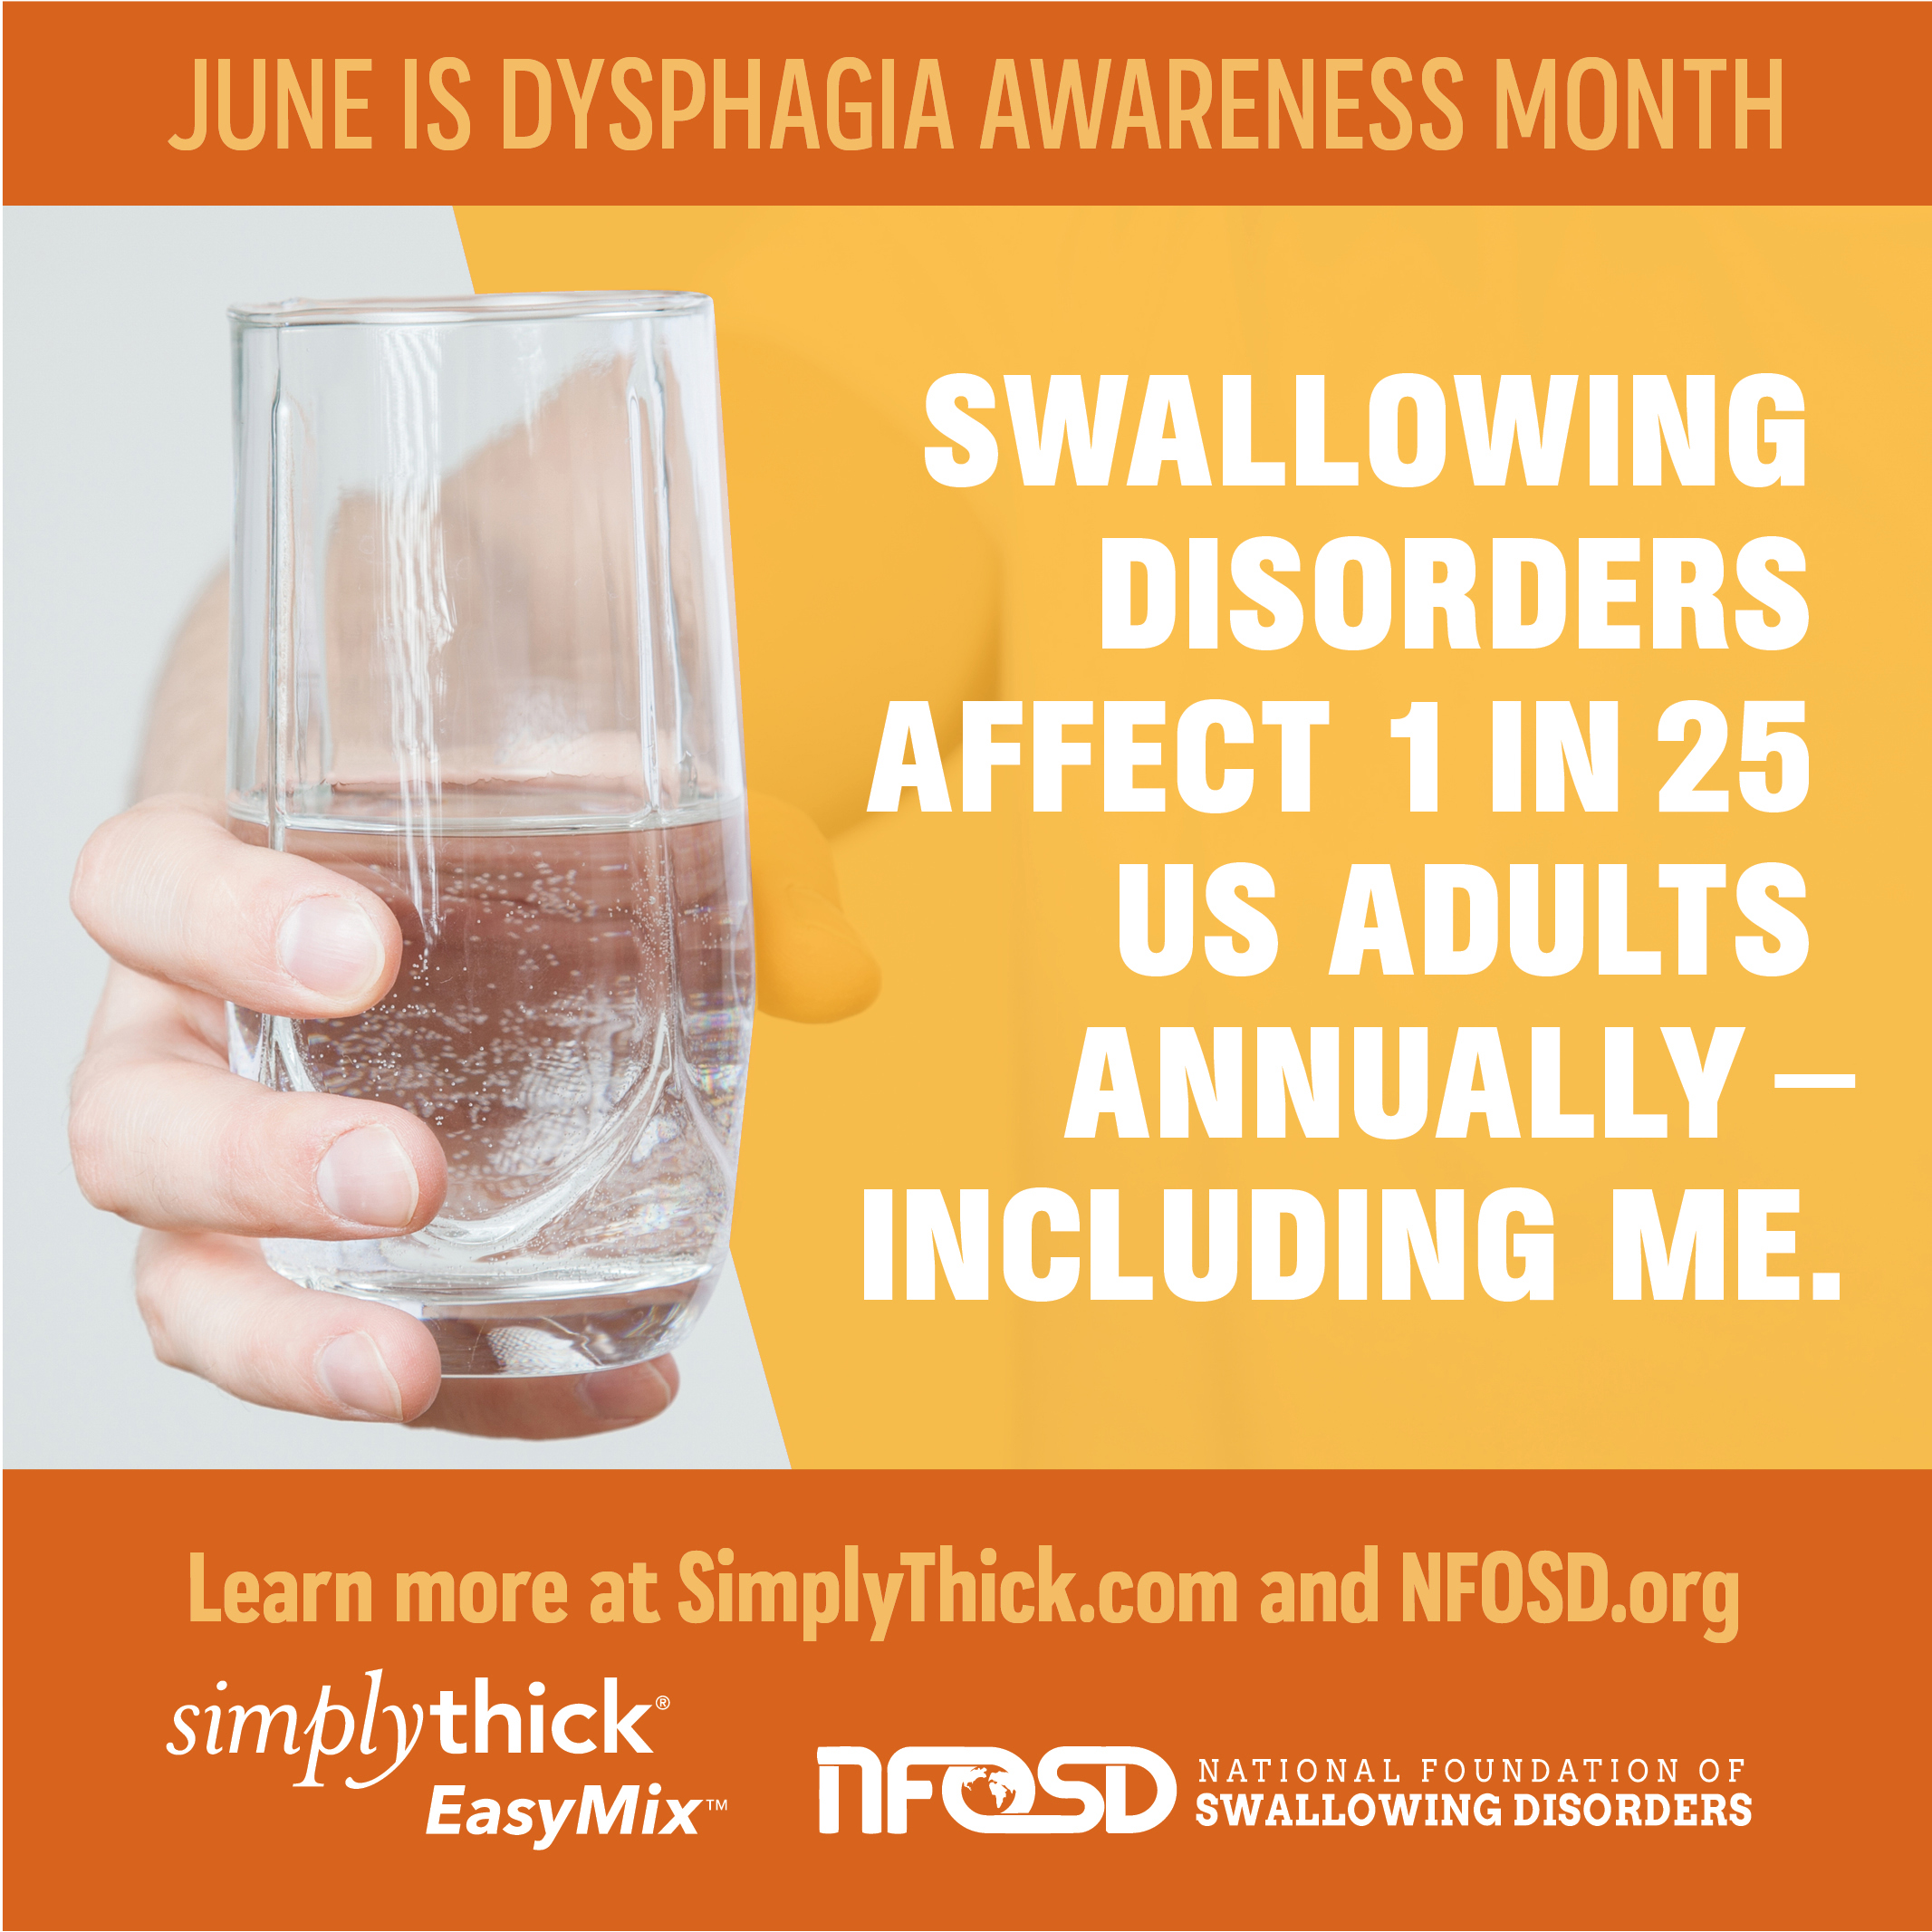 Swallowing Disorders affect 1 in 25 US adults